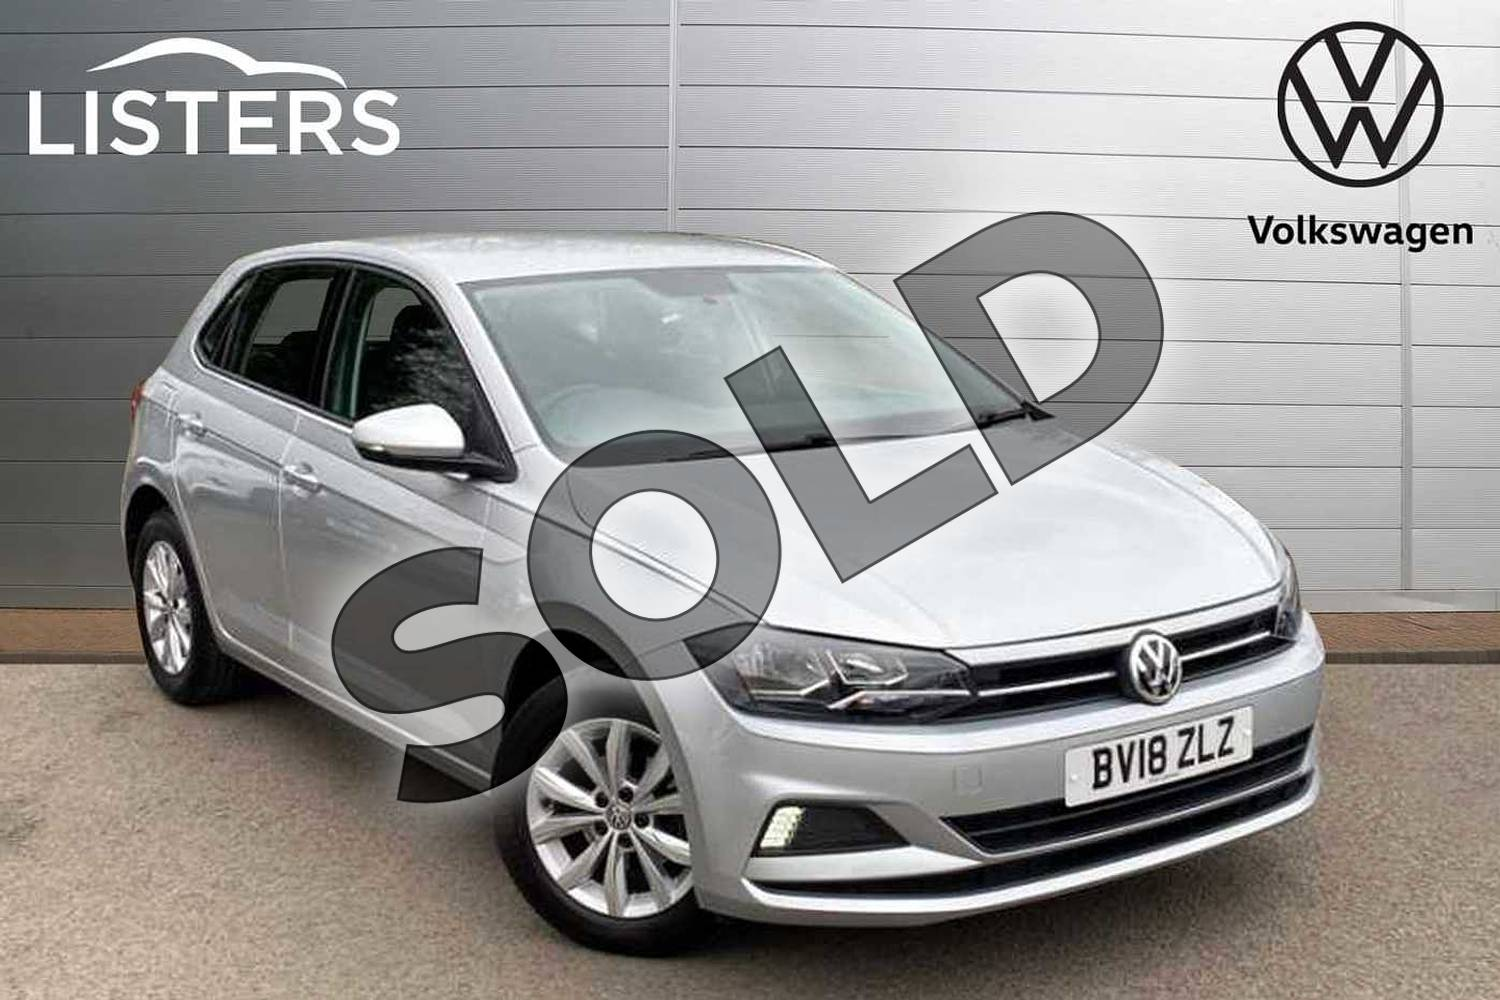 2018 Volkswagen Polo Hatchback 1.0 TSI 95 SE 5dr in Reflex silver at Listers Volkswagen Coventry